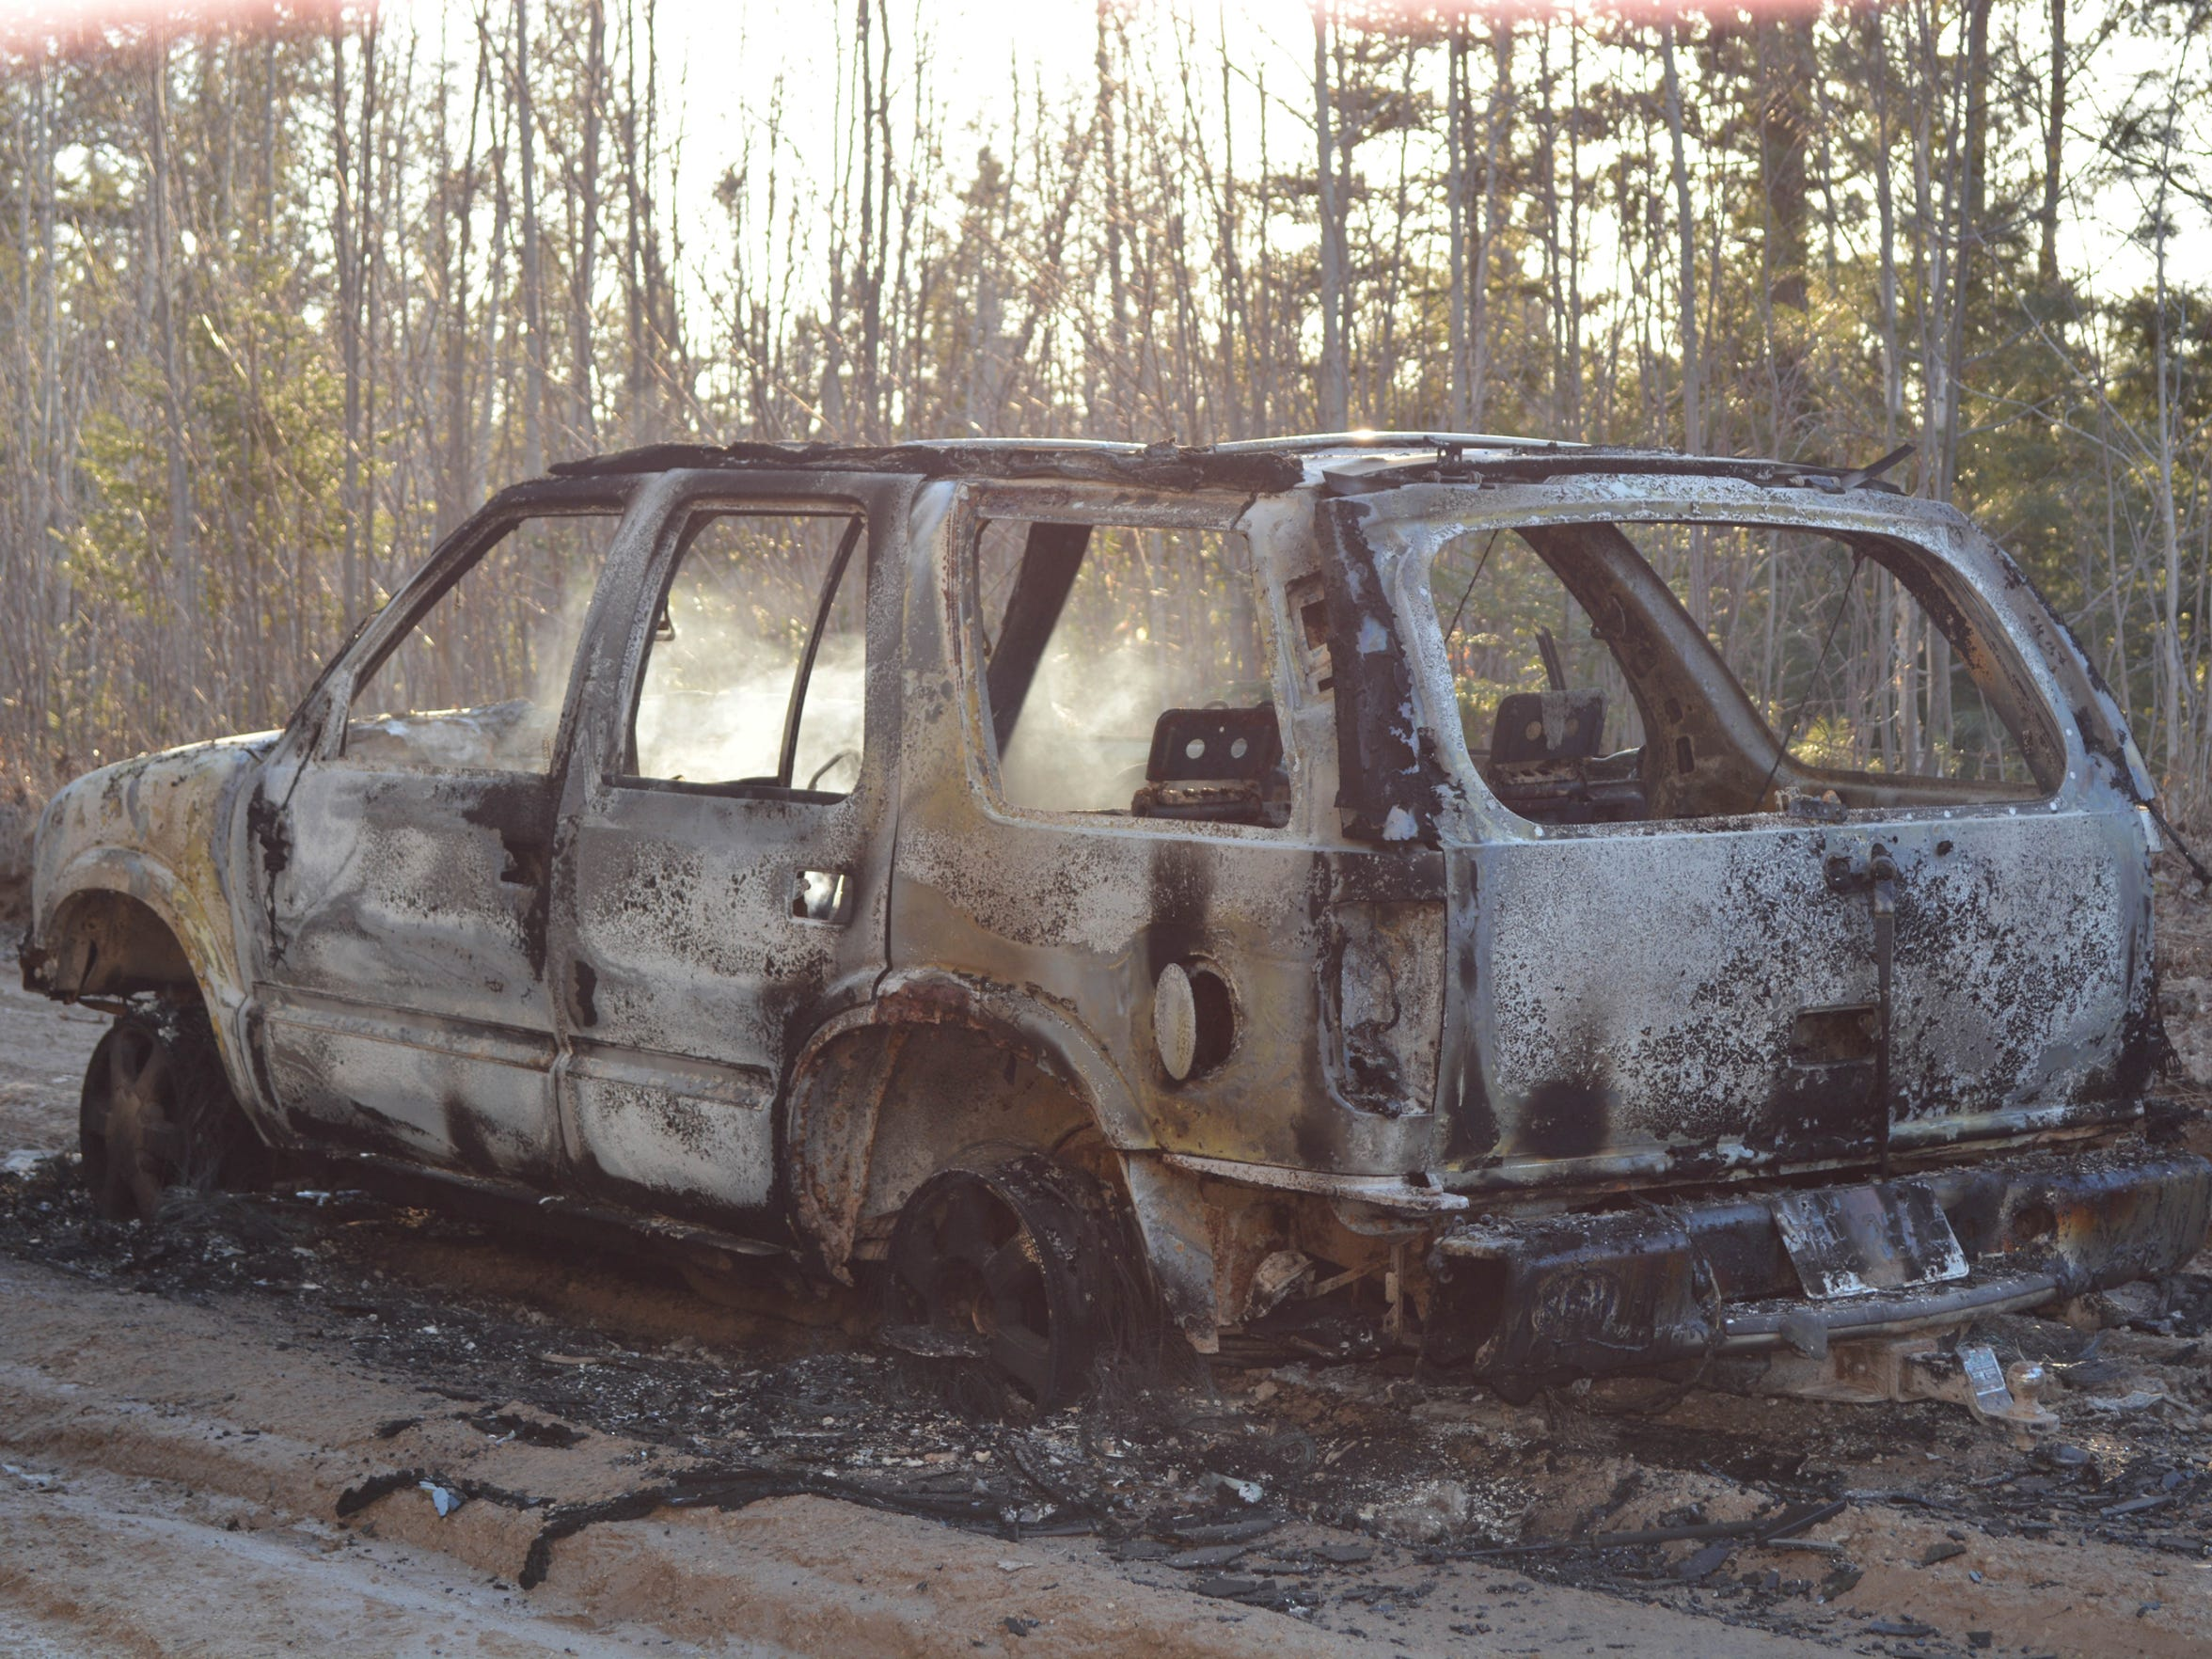 The burned Bravada containing the bodies of tripple homicide victims Heather Aldrich, Carrie Nelson and Jodi Hutchinson lies in the traffic lane of River Road just outside Manistique in mid April 2015.